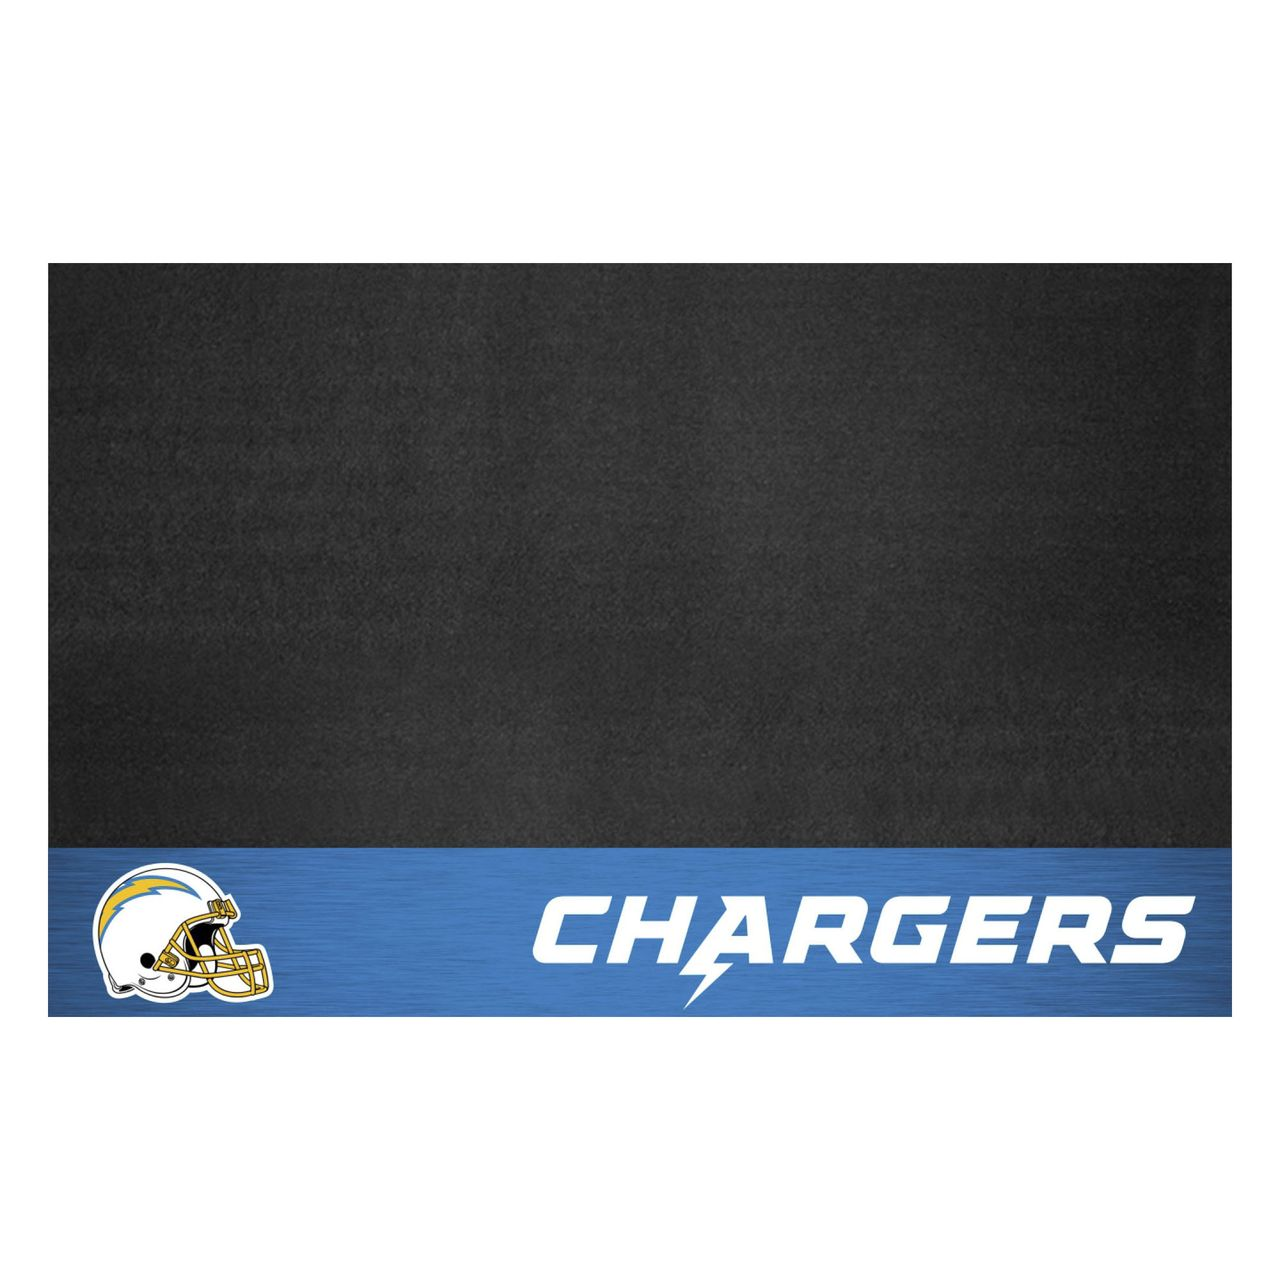 """Fanmats 12199 NFL - Los Angeles Chargers Grill Mat 26""""x42"""""""